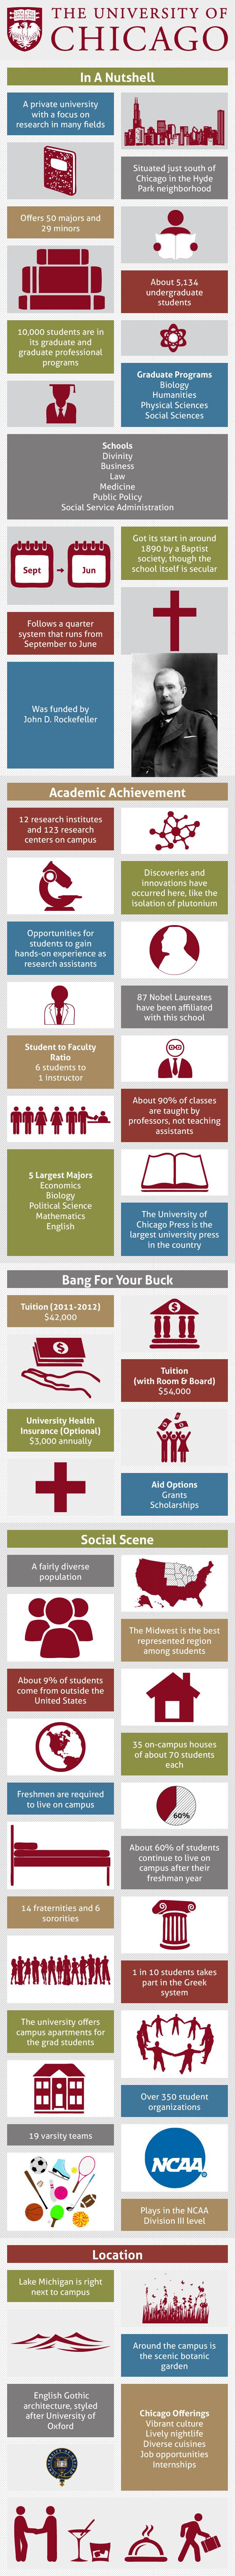 Why the University of #Chicago is one of the top universities of #UnitedStates? Find out: http://www.mapsofworld.com/usa/universities/university-of-chicago-illinois.html